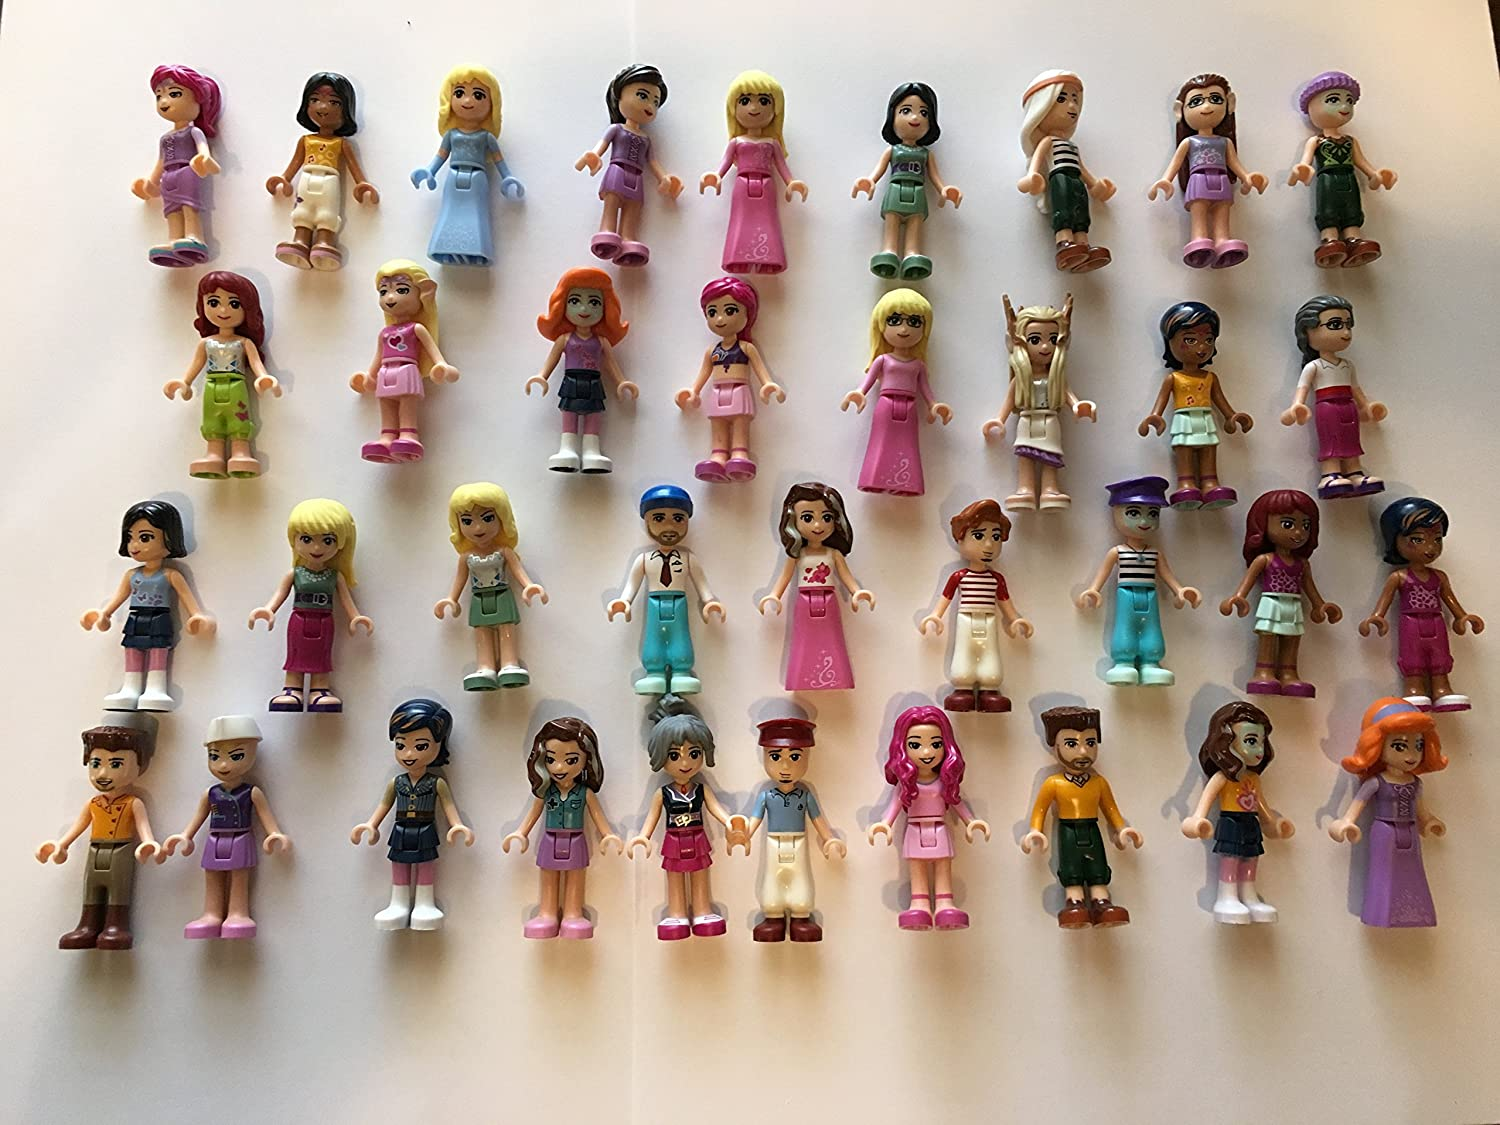 LEGO Friends Girl Female Male Minifigures - Lote de 10 figuras aleatorias